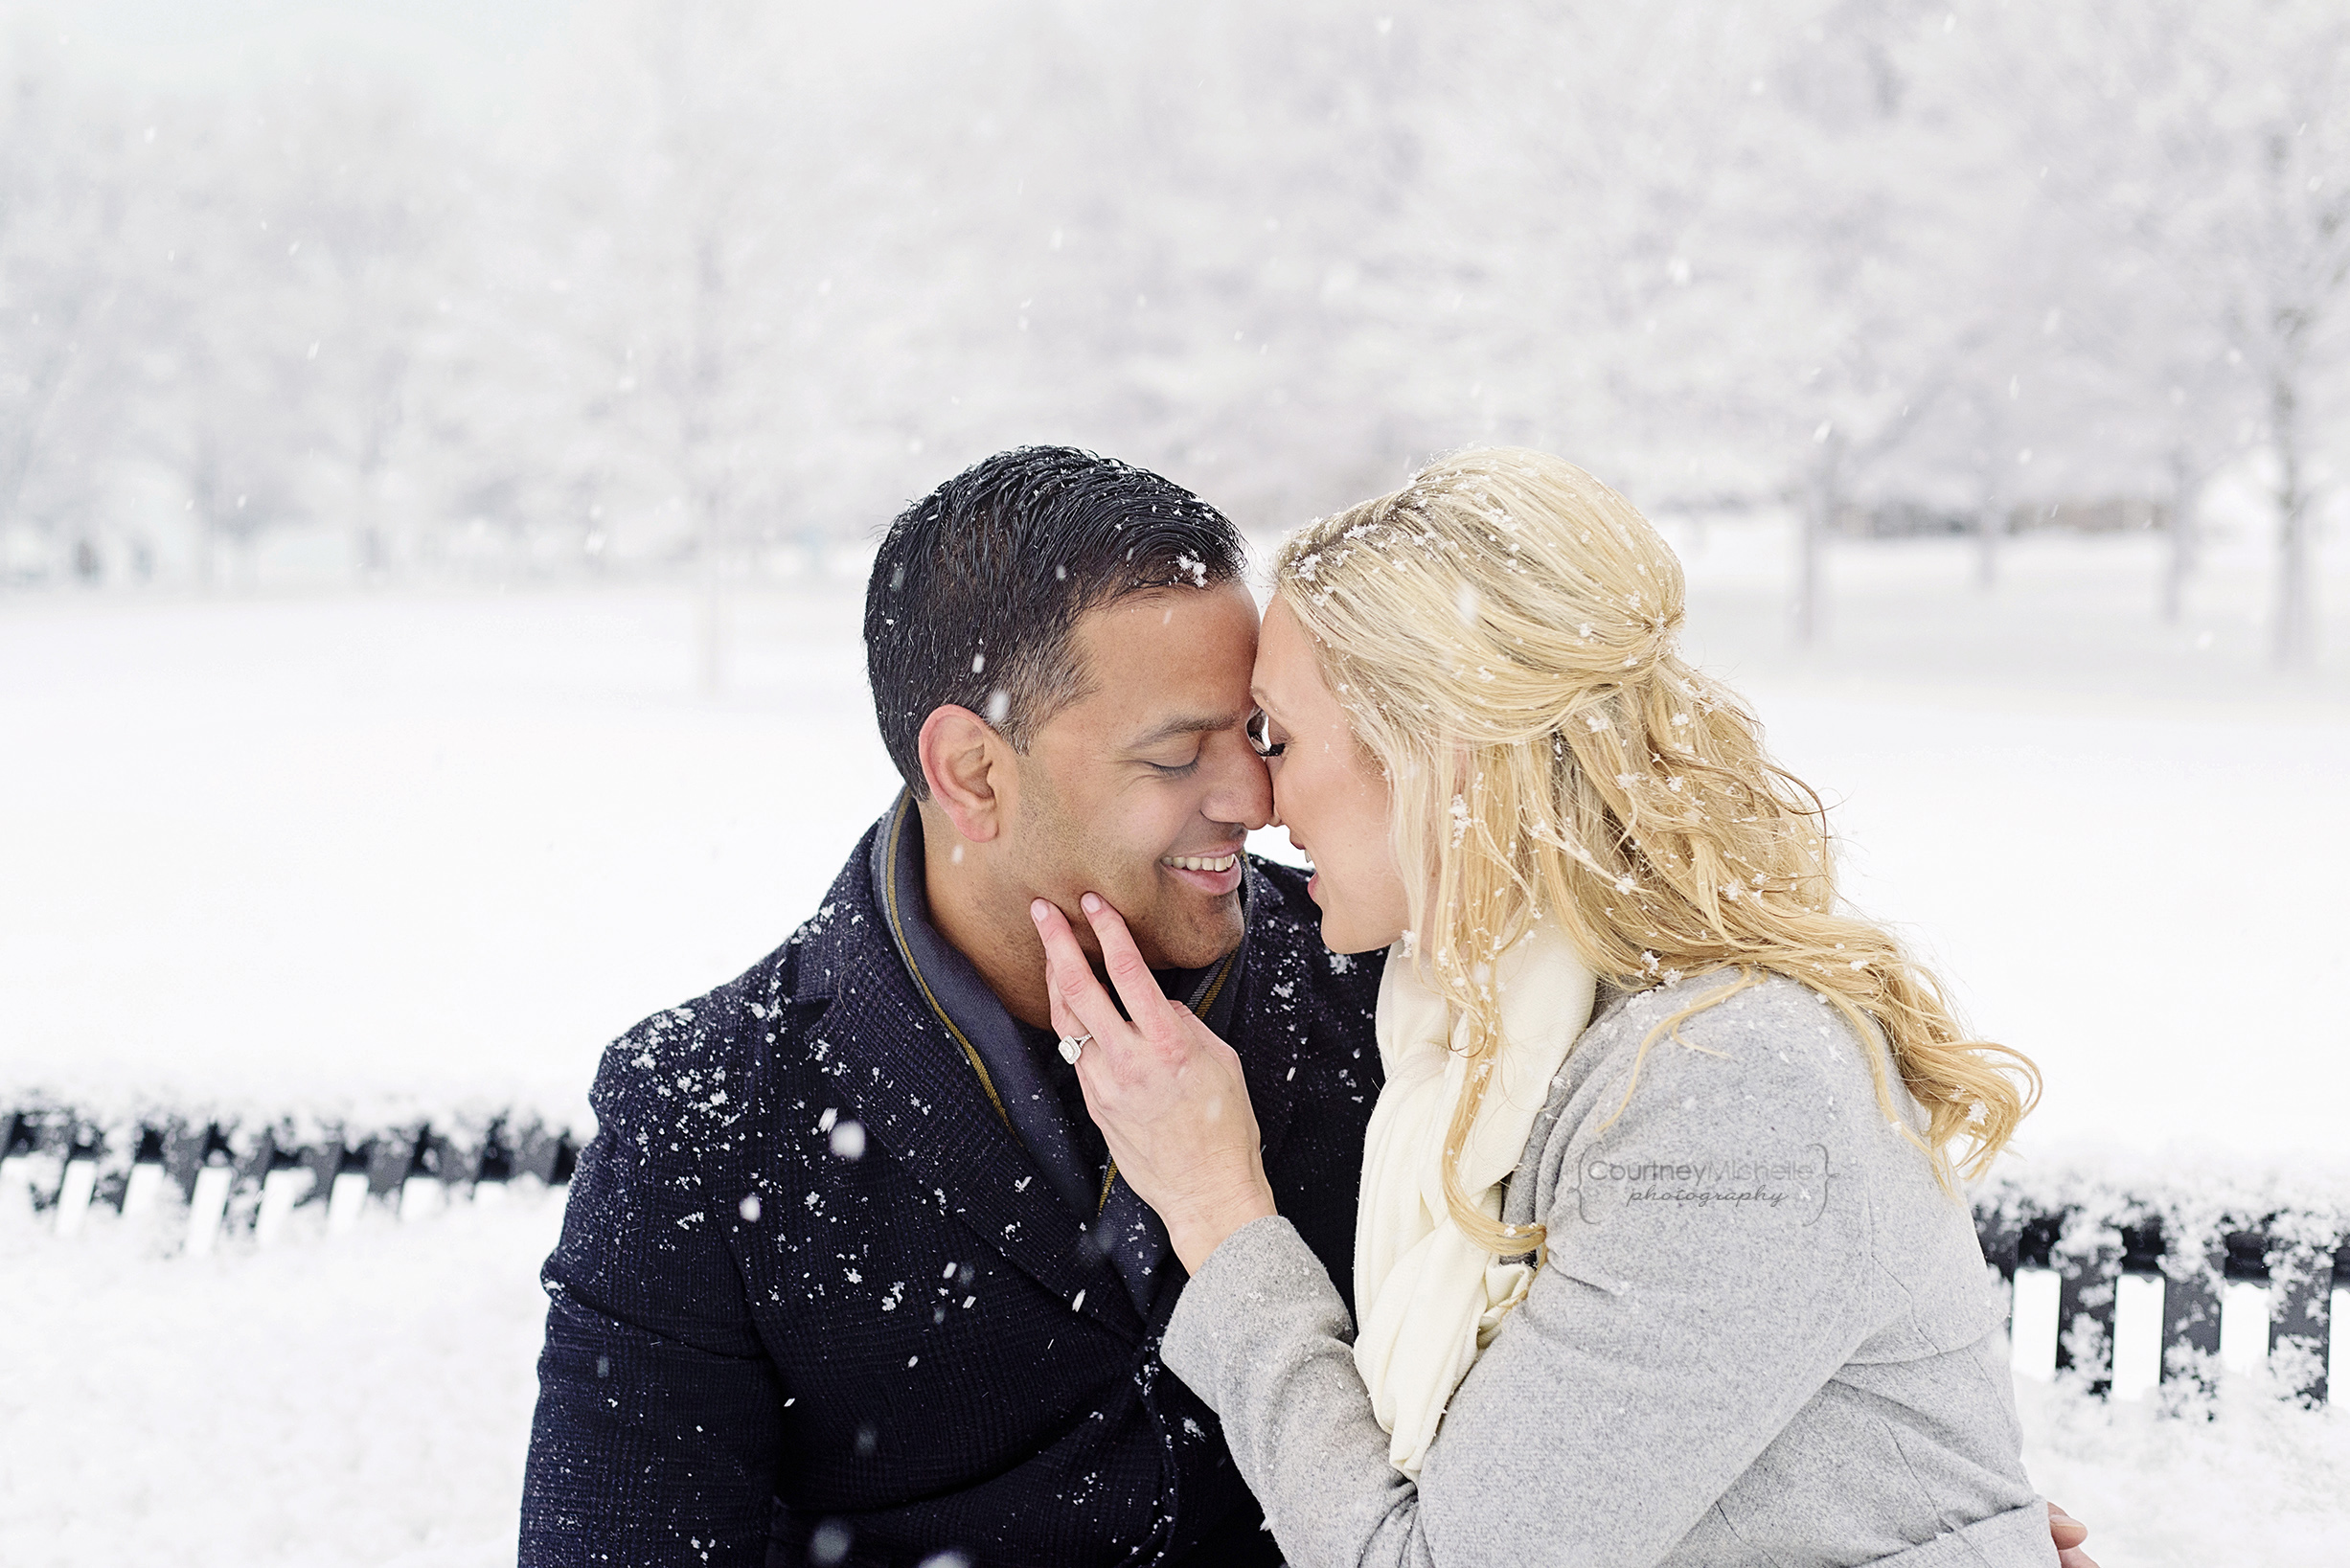 snowy-chicago-engagement-photography-museum-campus-snuggling-in-snow-courtney-laper©COPYRIGHTCMP-3477.jpg